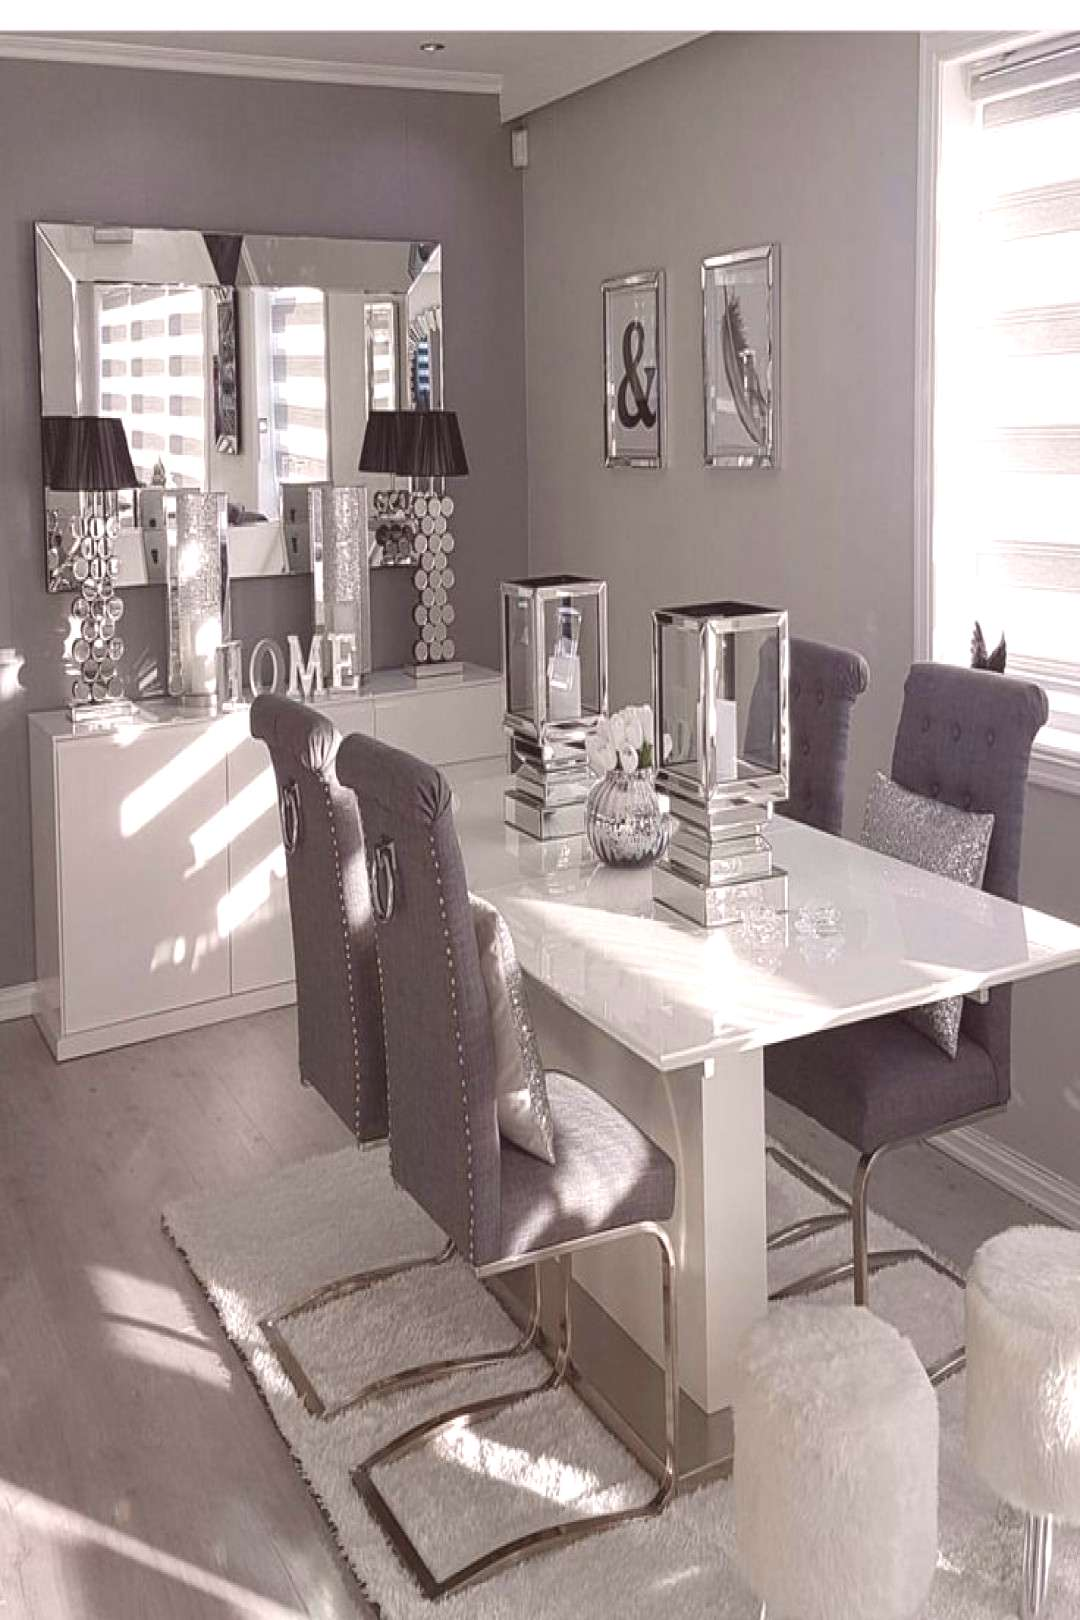 19 ideas for the dining room >> More decorating ideas for restaurants ...#decor